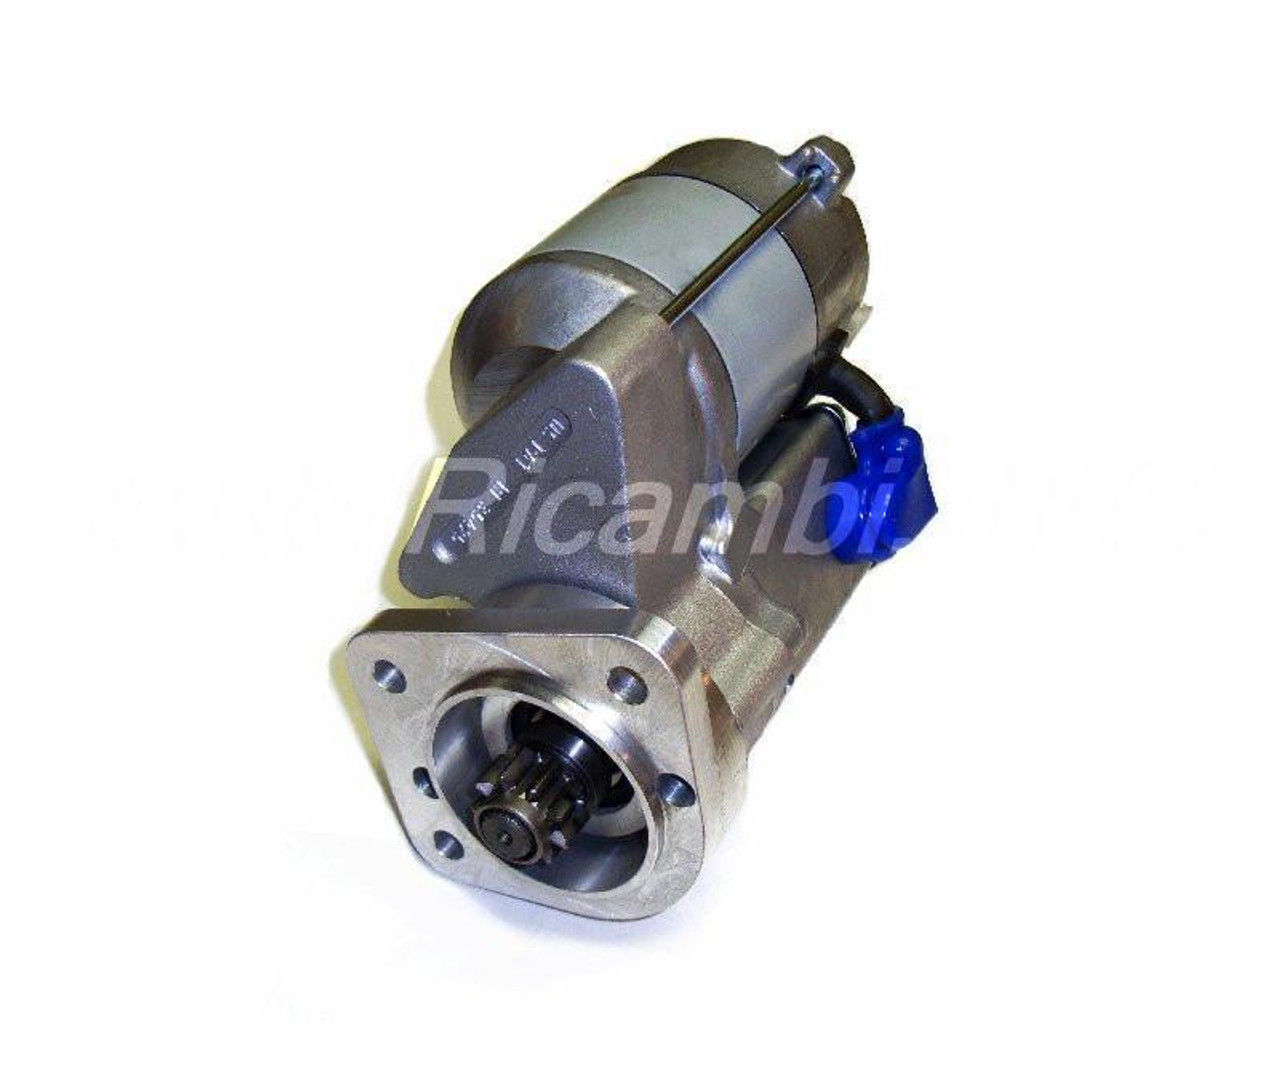 FIAT 850 - High Performance Gear Reduction Starter